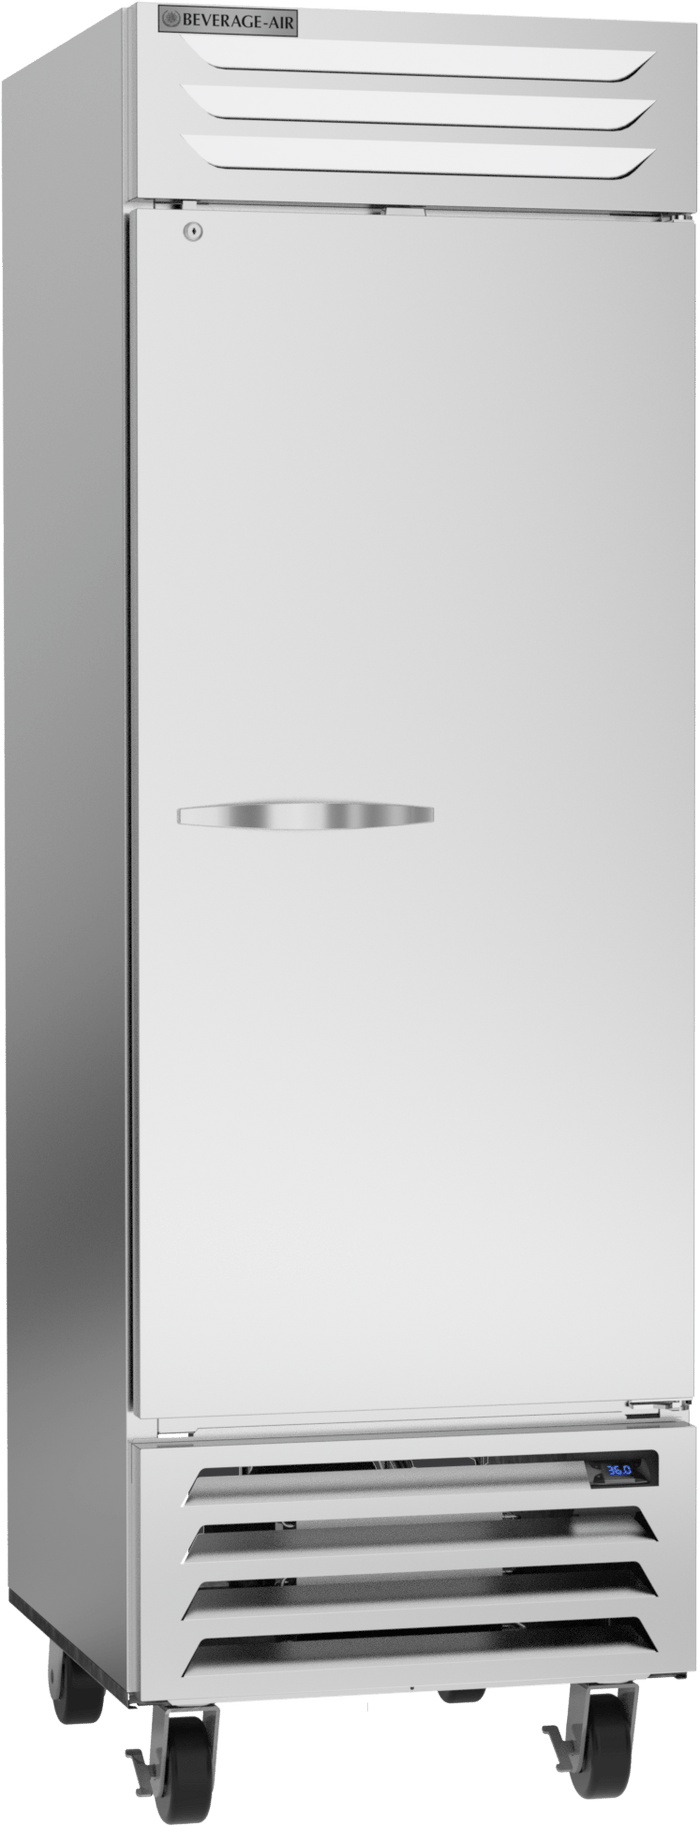 "Beverage Air RB23HC-1S 27"" Vista Series Solid Door Reach in Refrigerator - 23 Cu. Ft."